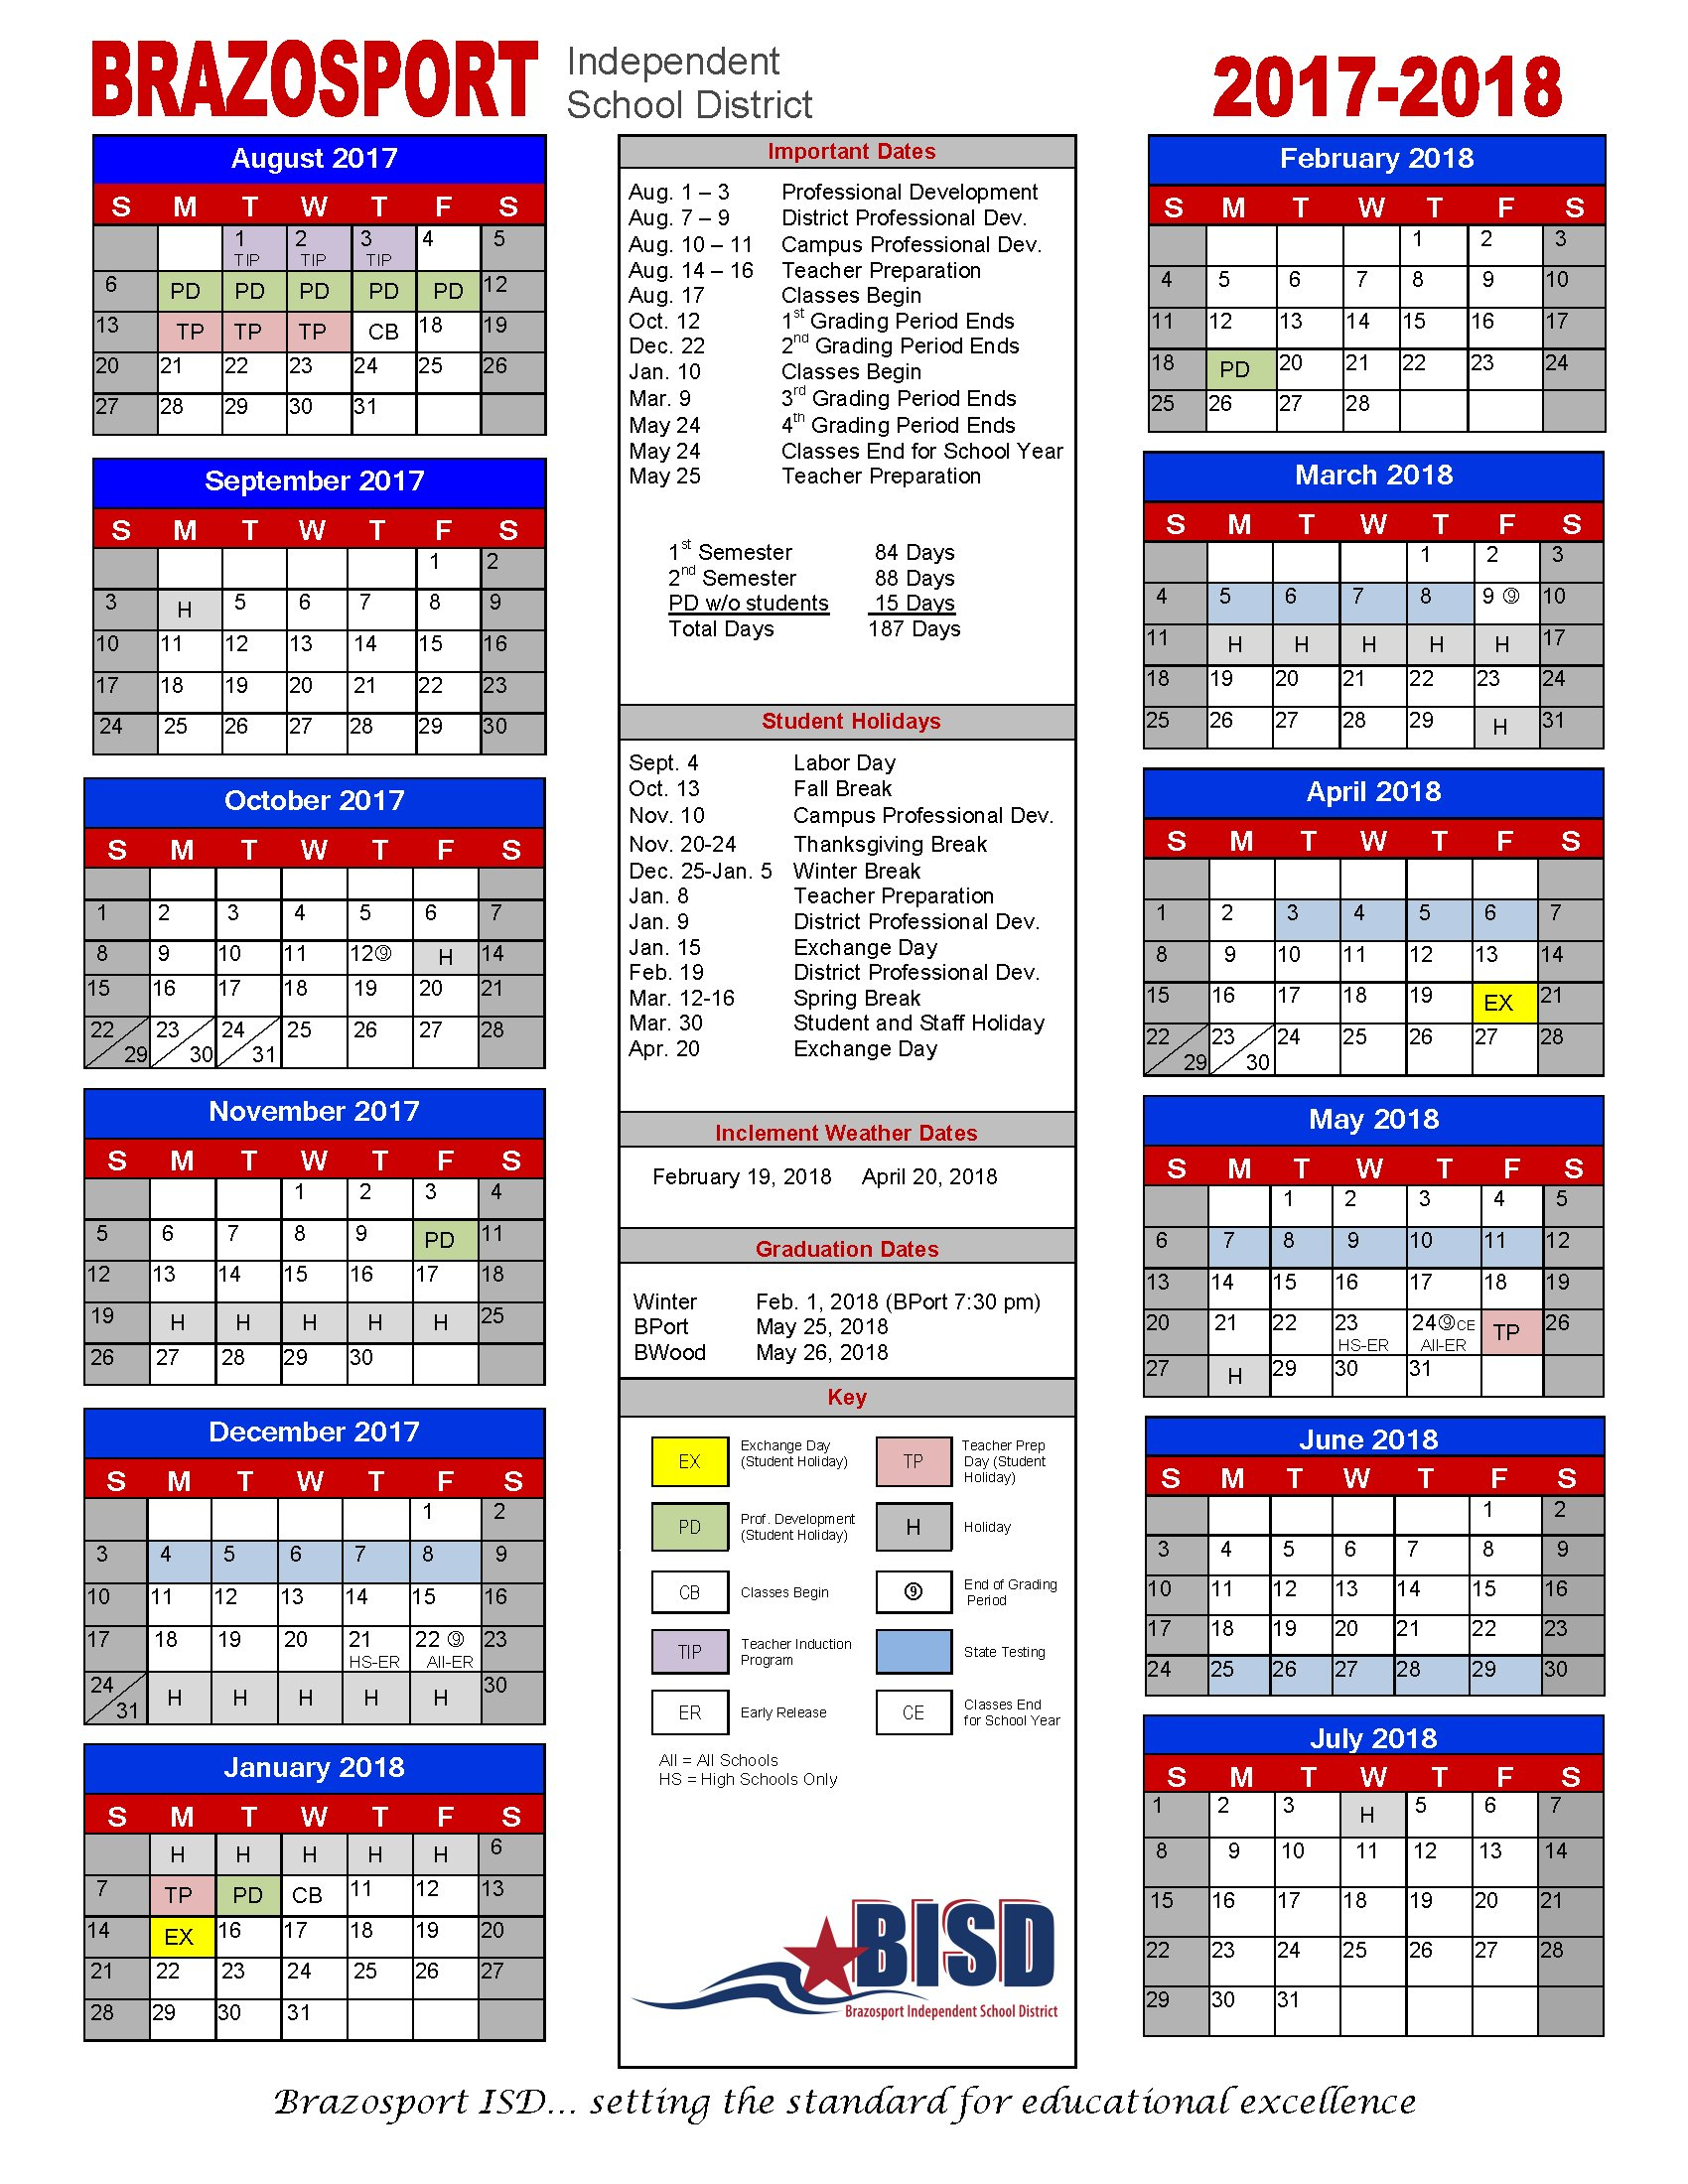 Galena Park Isd Calendar 2018 2019 To Download Or Print within Payroll Calendar Galena Park Isd